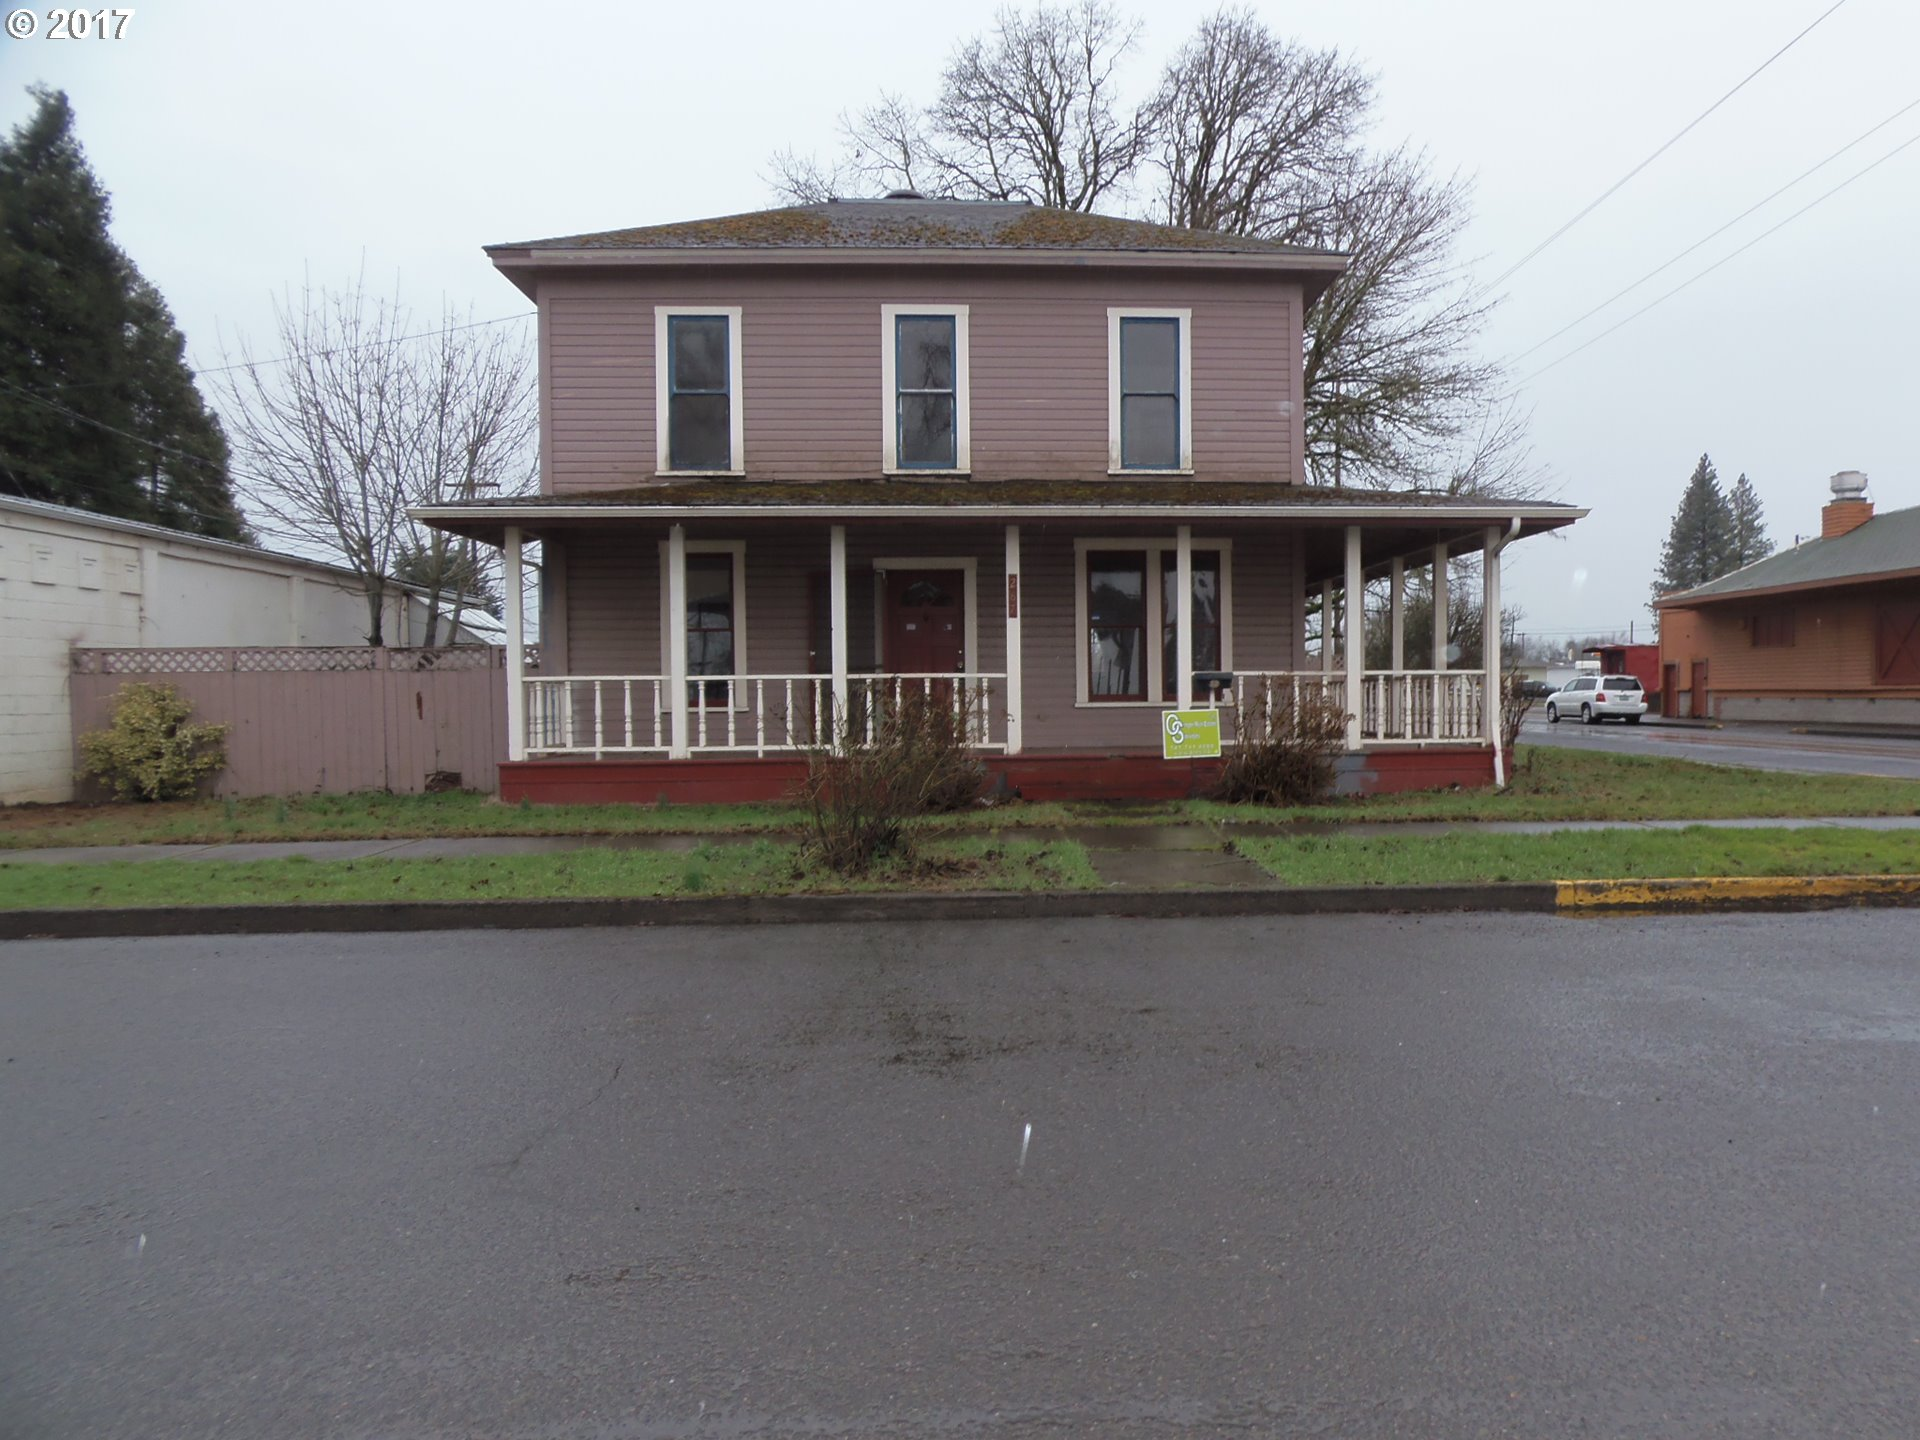 287 W 5TH AVE, Junction City, OR 97448